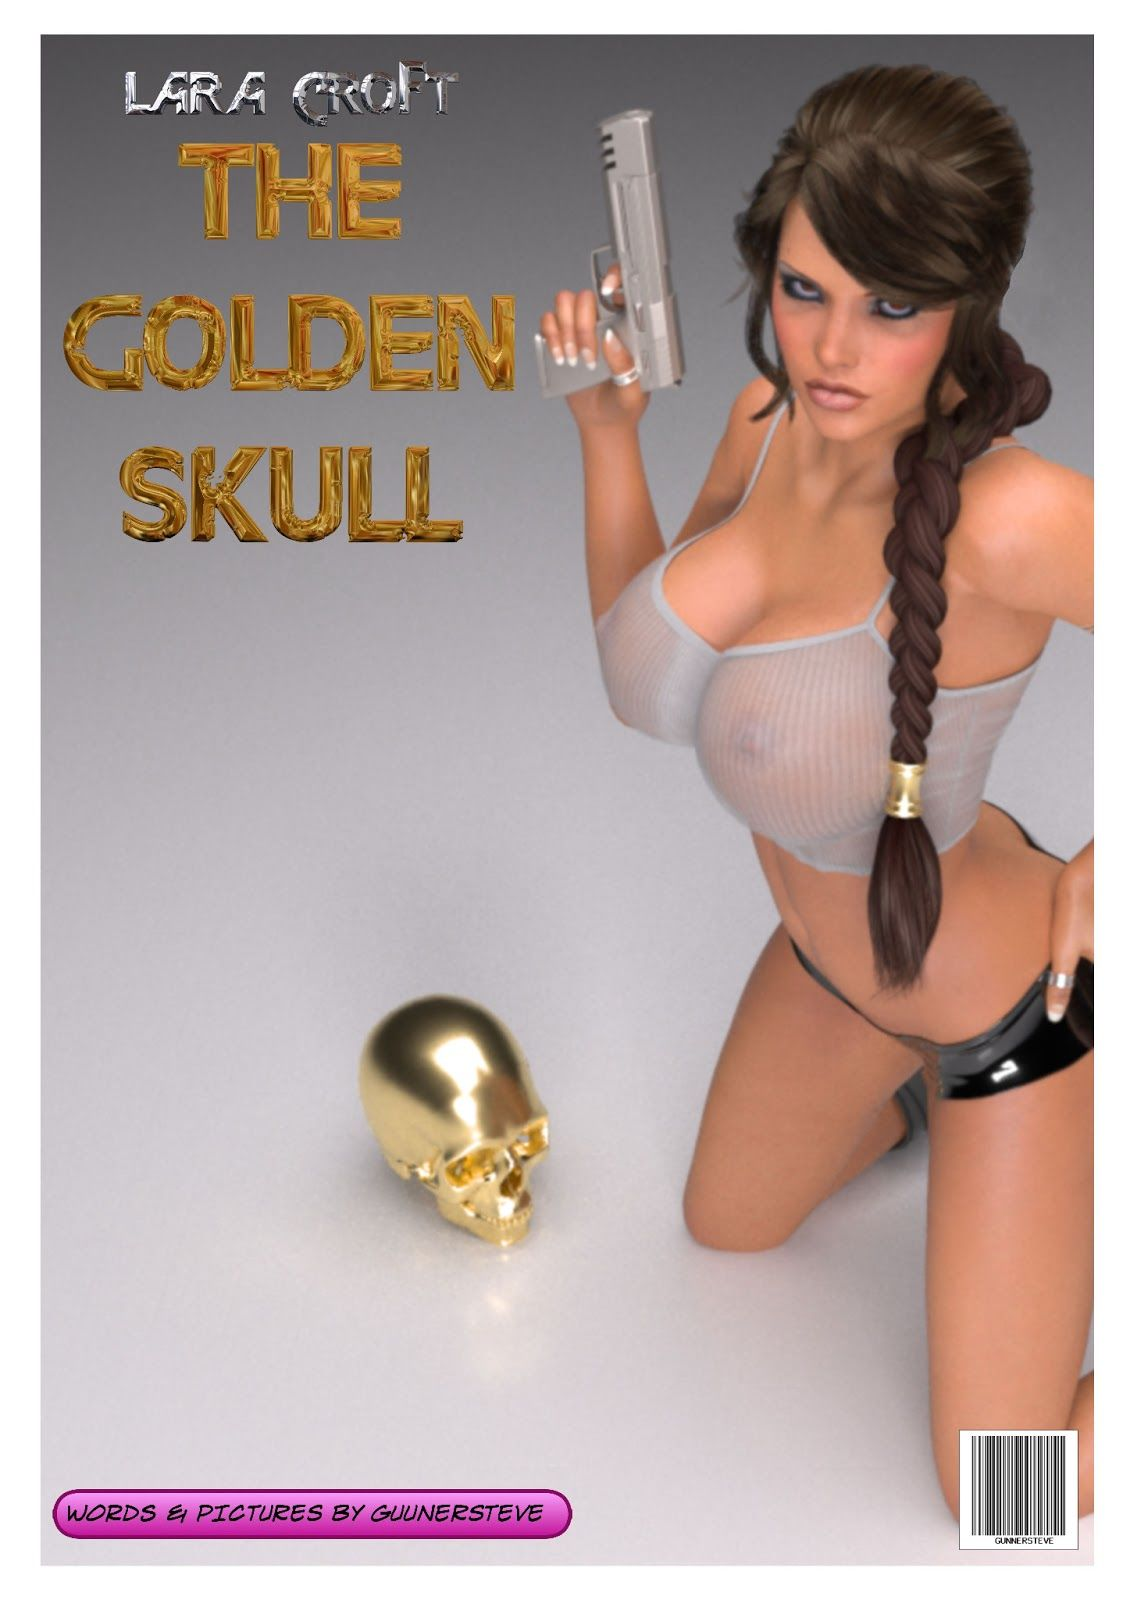 Lara Croft - The Golden Skull